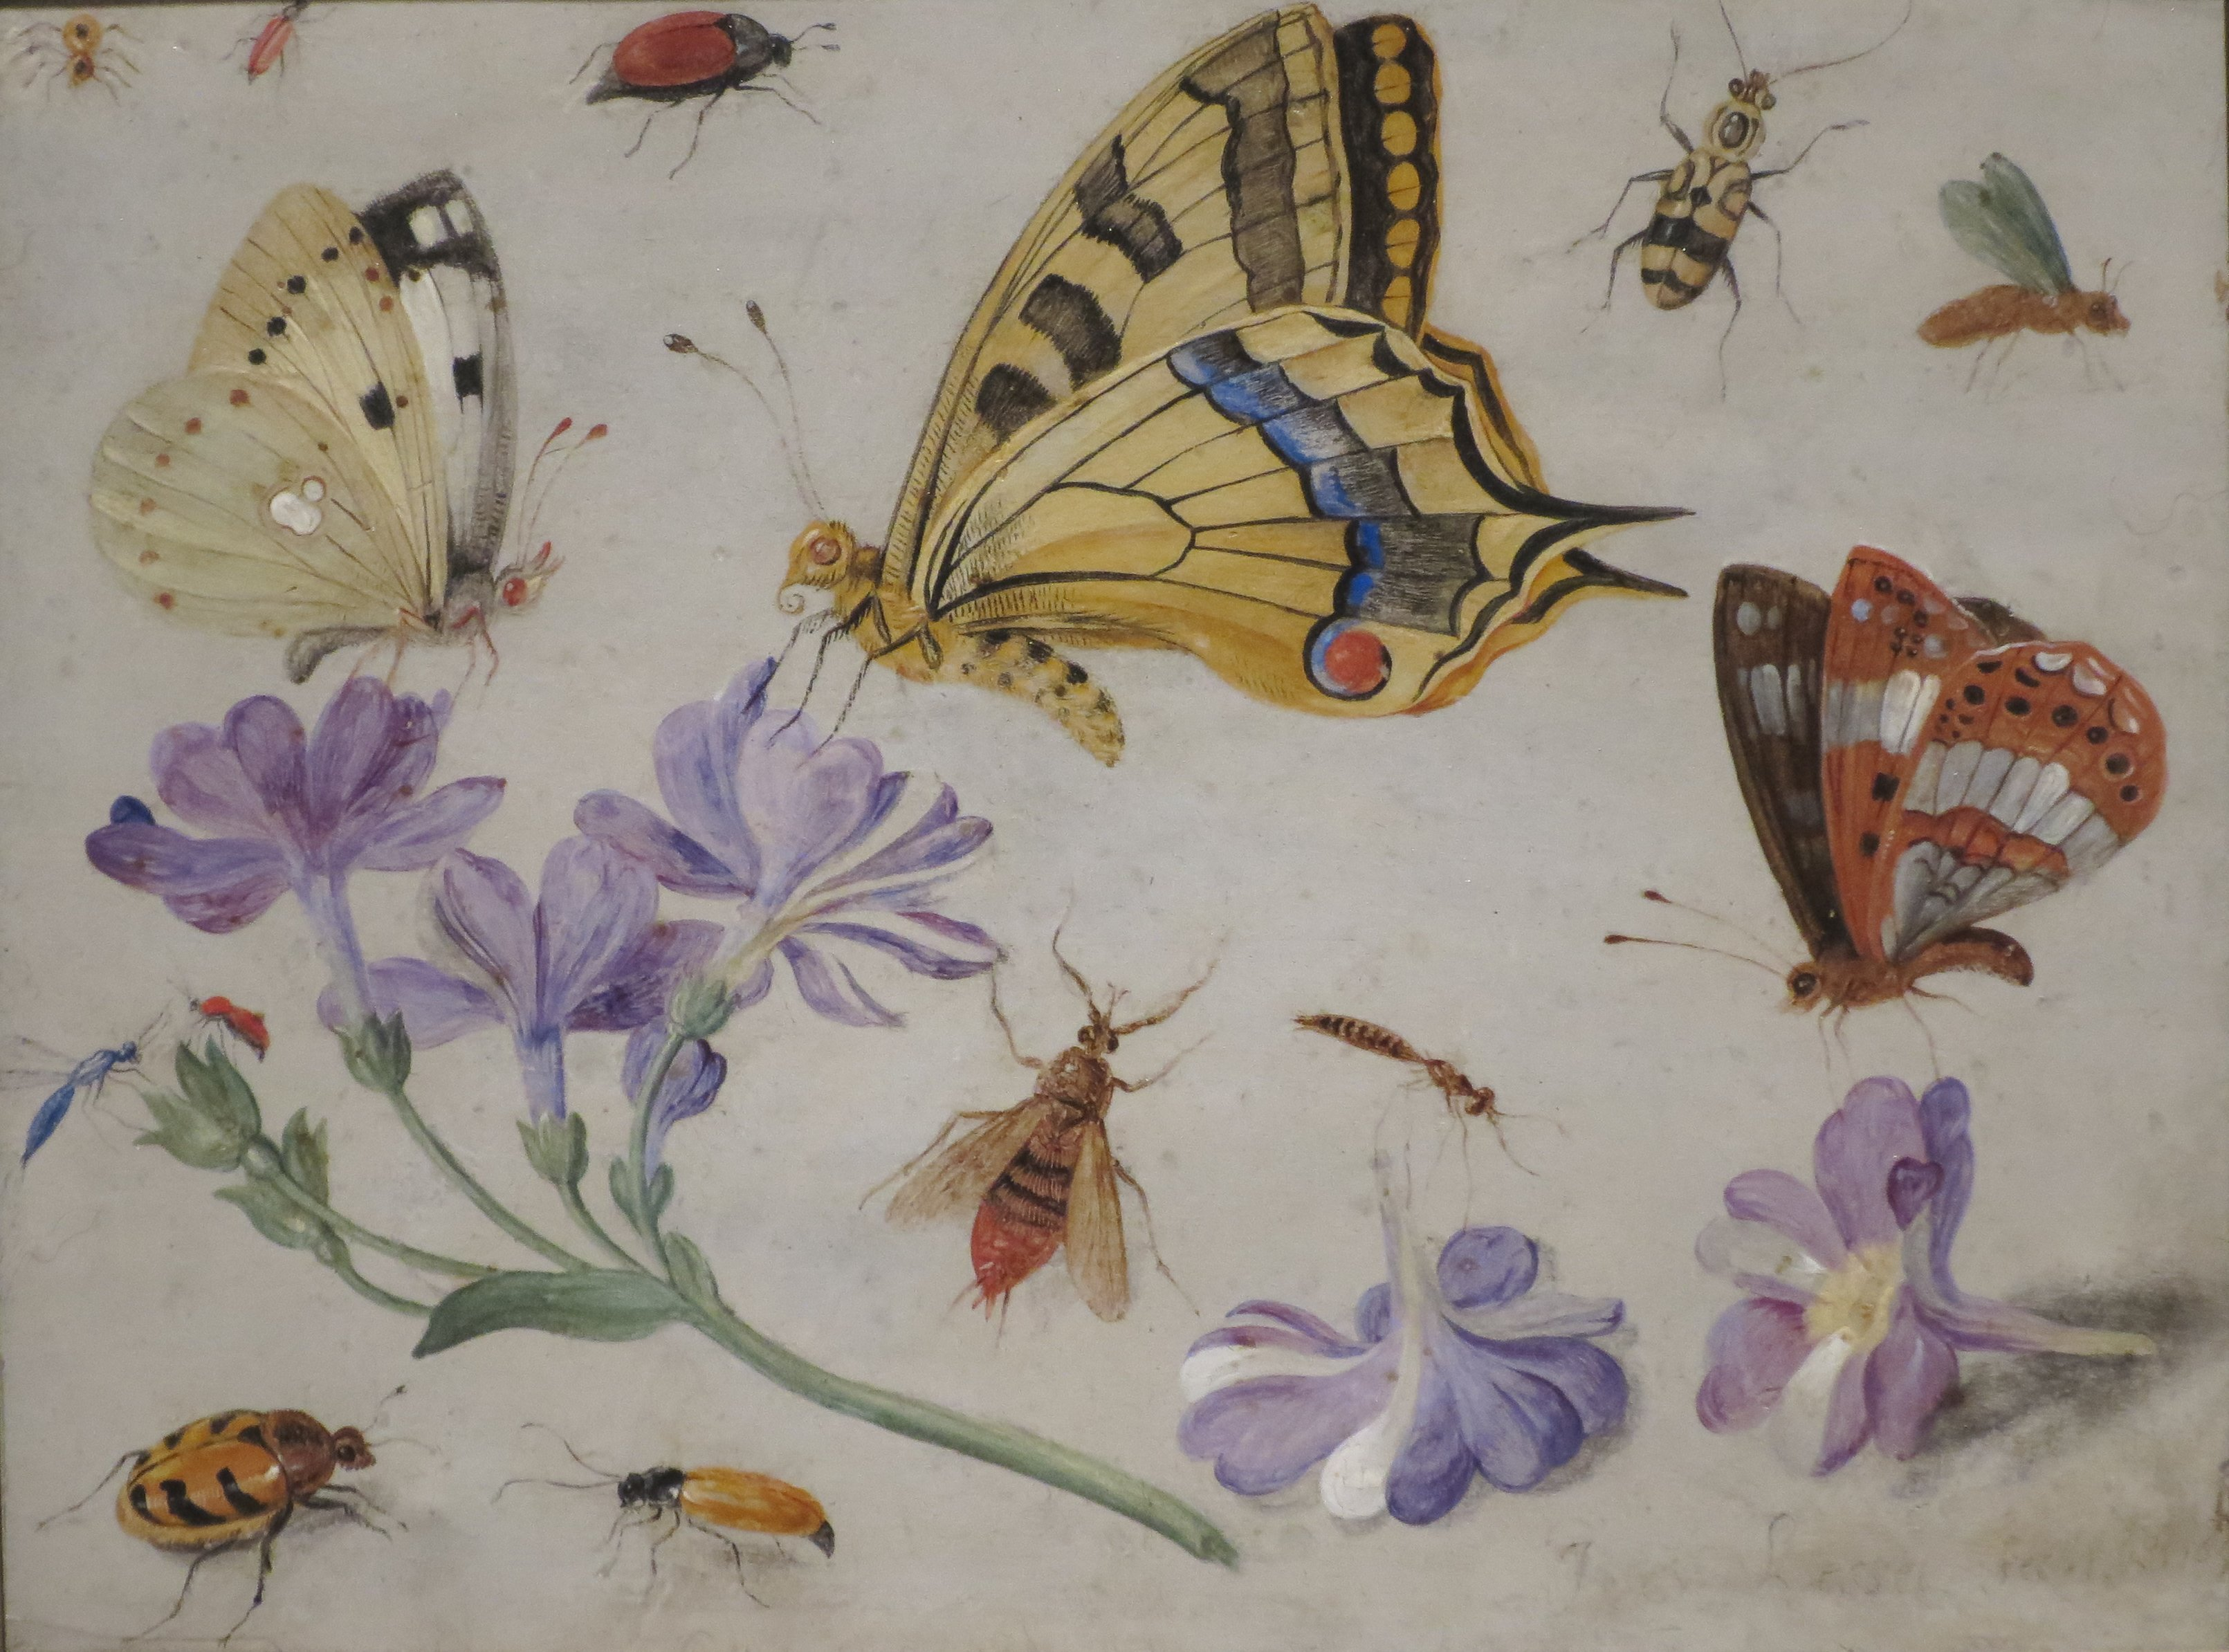 File:\'Butterflies, Other Insects, and Flowers\' by Jan van Kessel ...